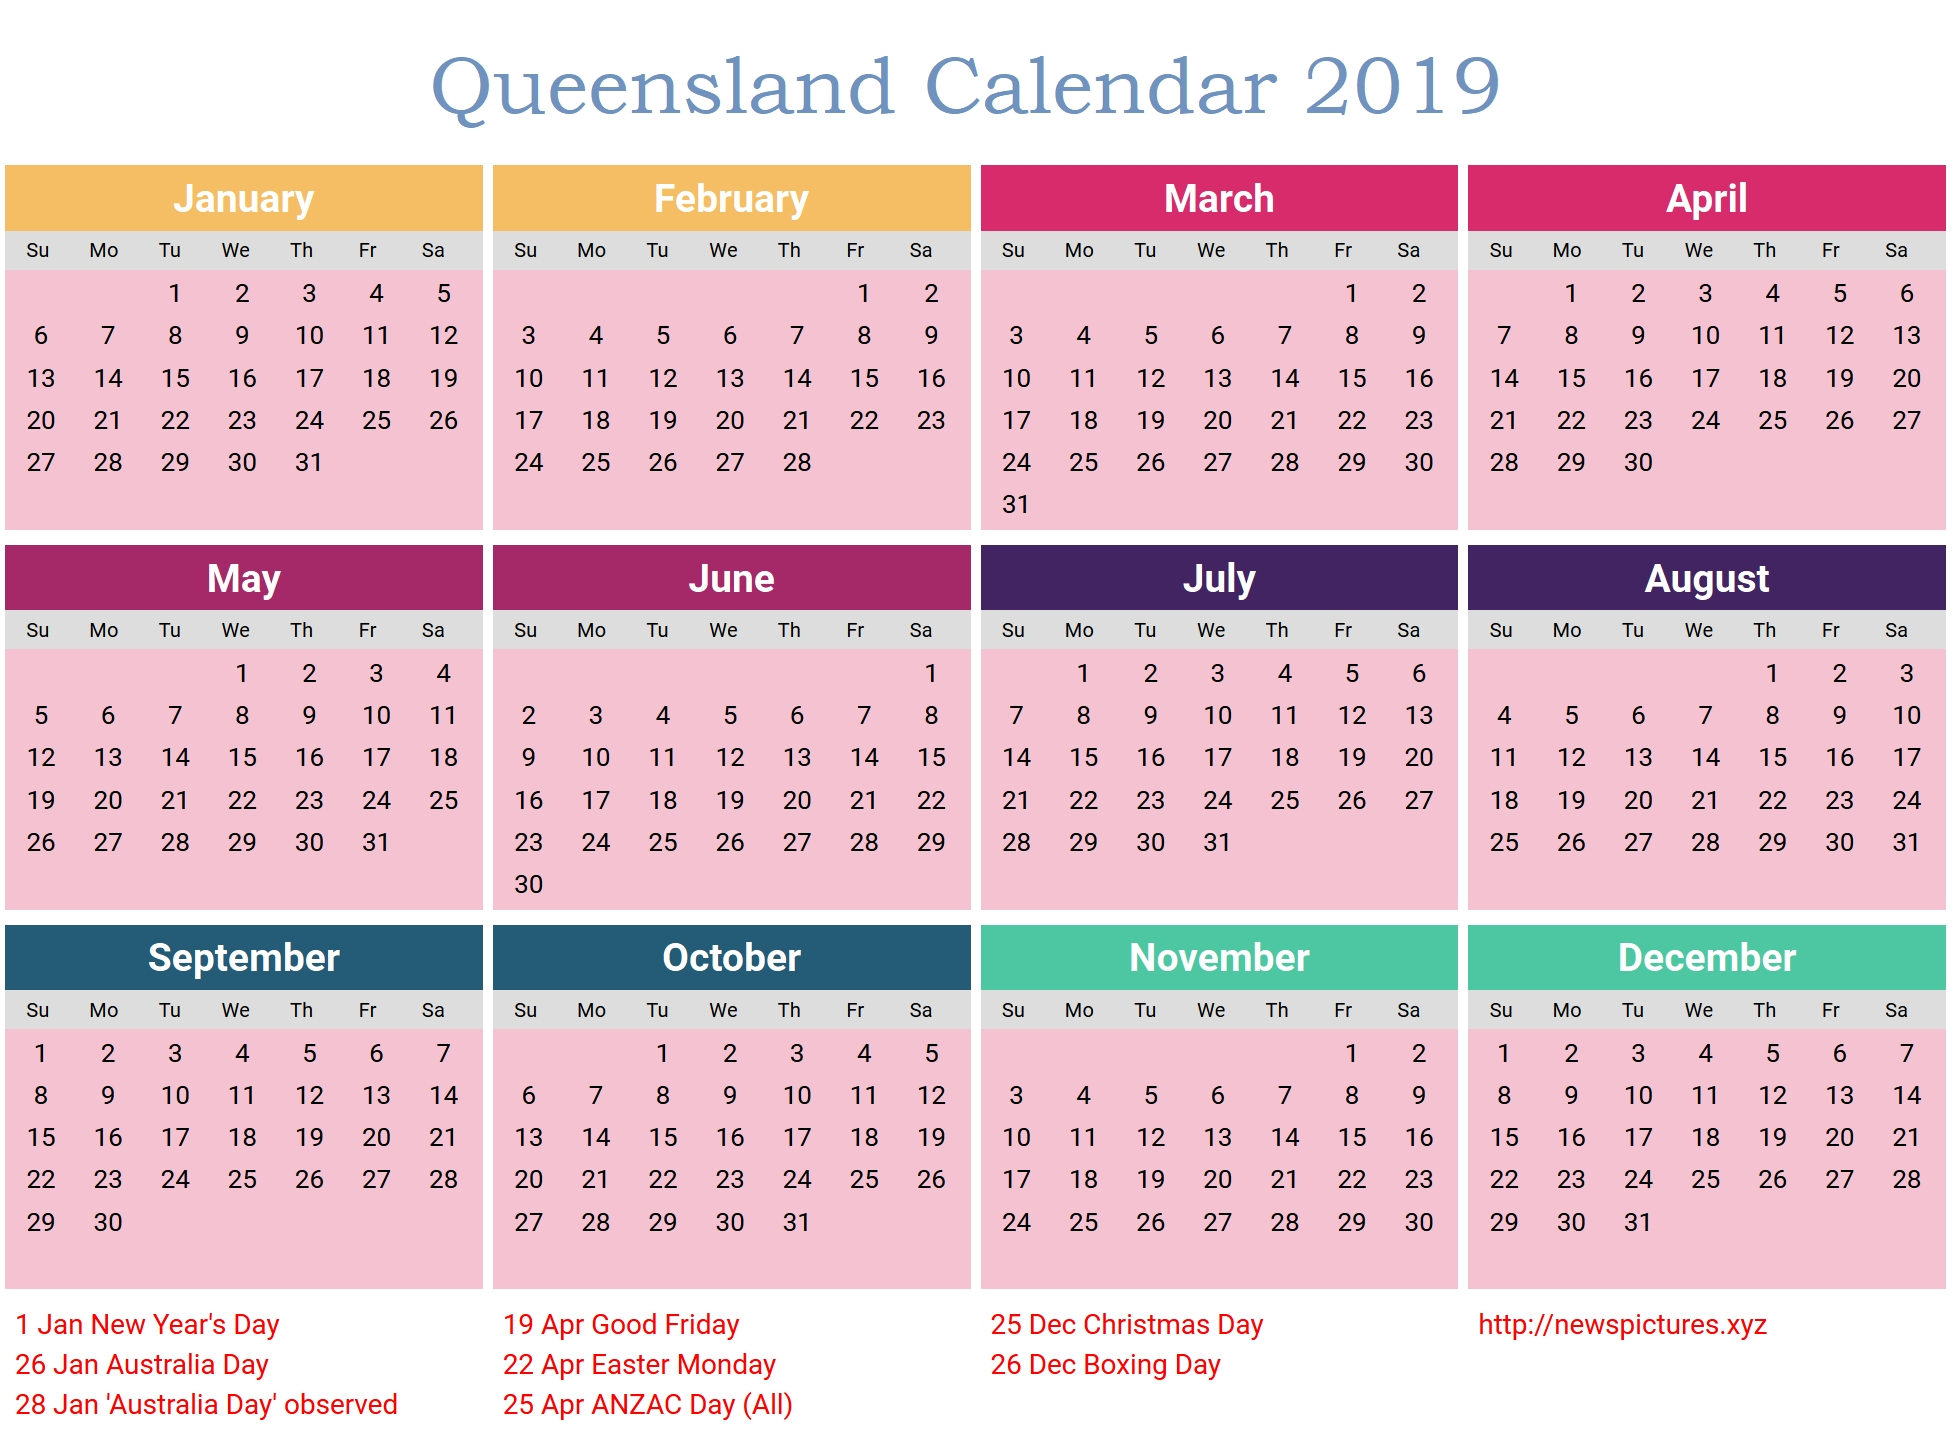 Calendar 2019 Printable With Holidays Qld • Printable Blank Calendar 2019 Calendar Qld Holidays